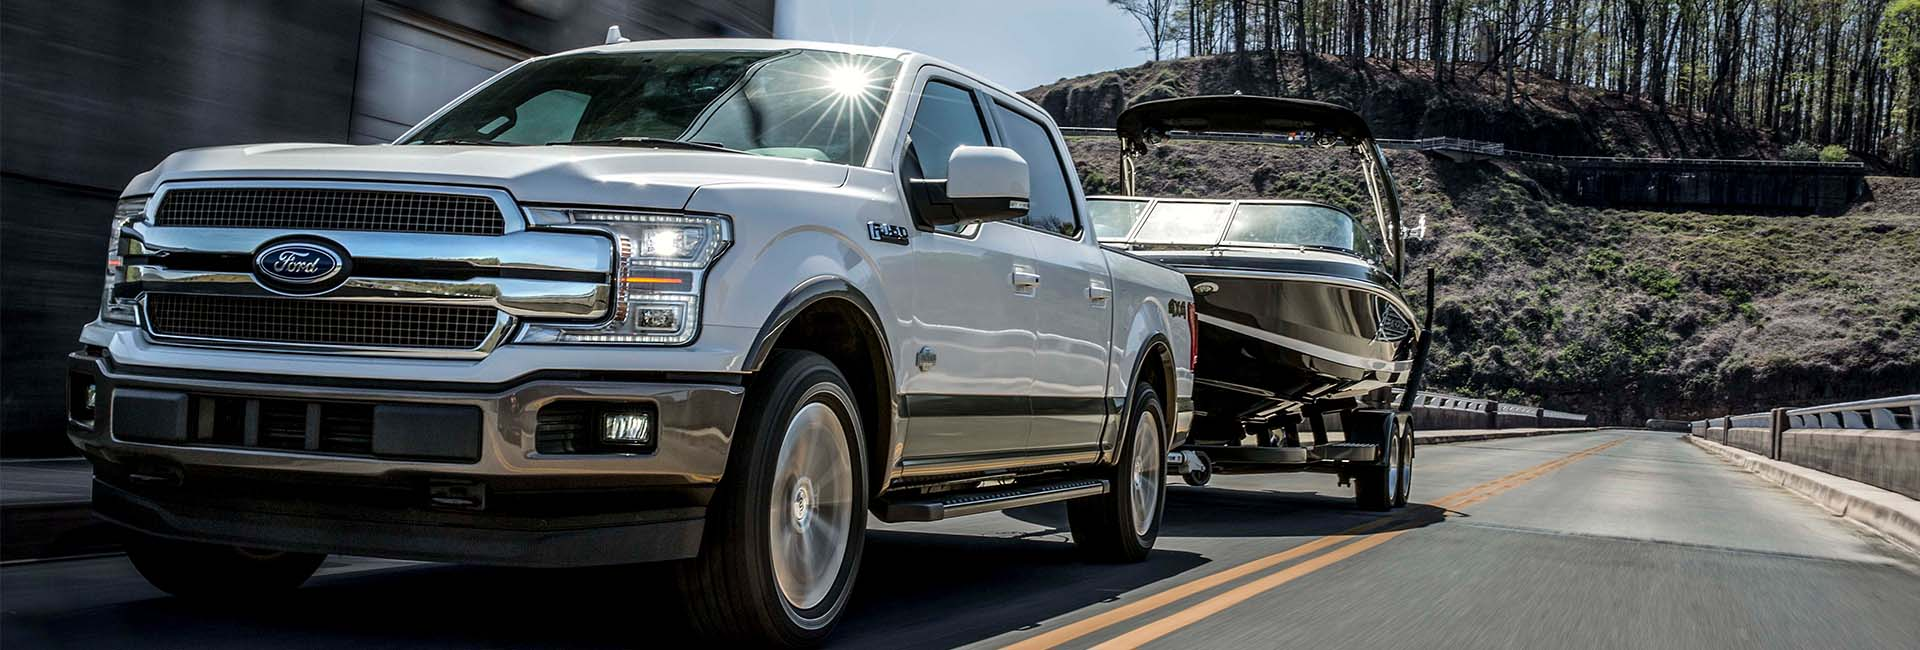 Ford F-150 trim levels